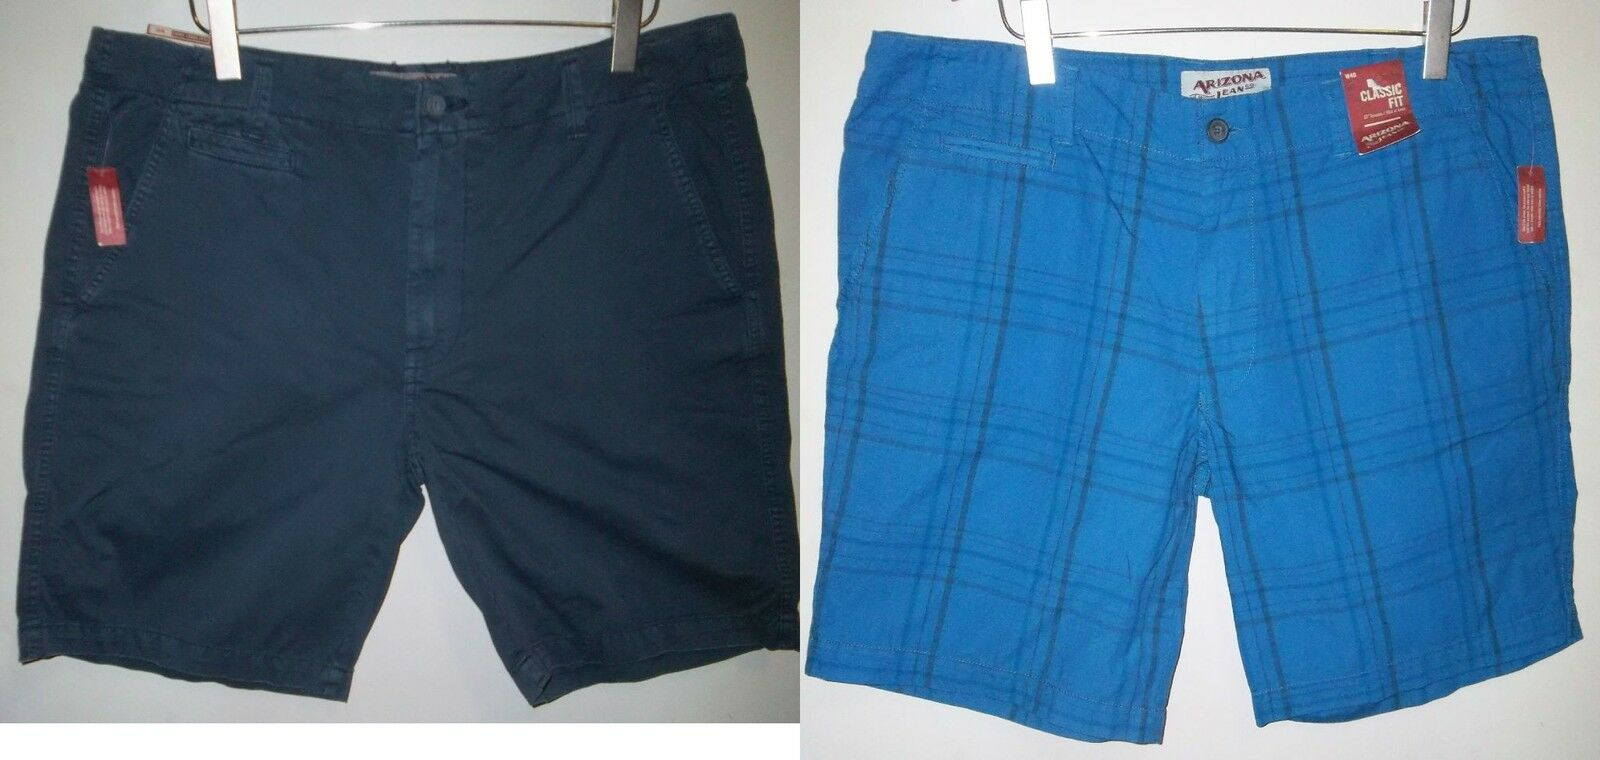 2 PAIR NEW WITH TAGS NWT MENS ARIZONA SHORTS WAIST SIZE 40 W40